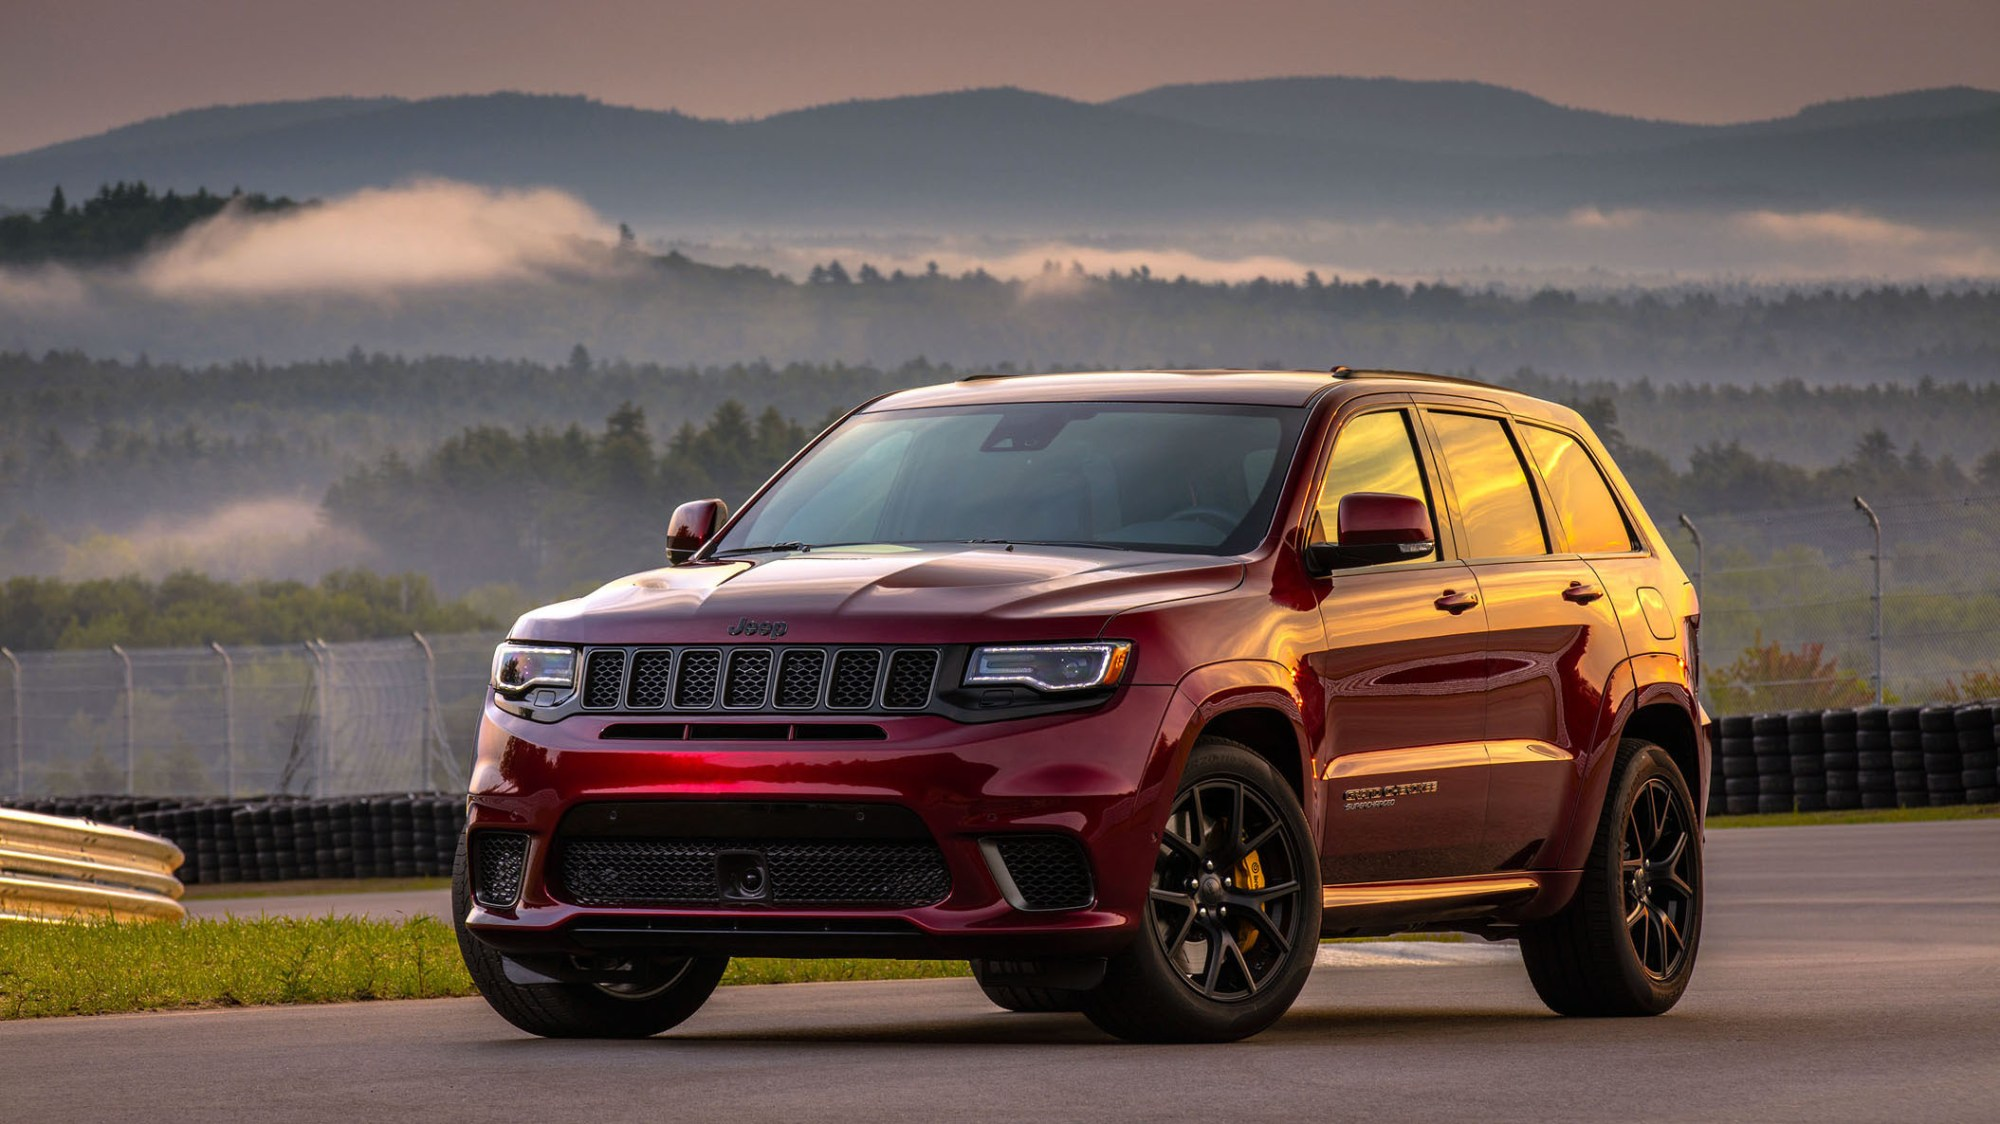 hight resolution of 2018 jeep grand cherokee buying guide popular suv questions and answers